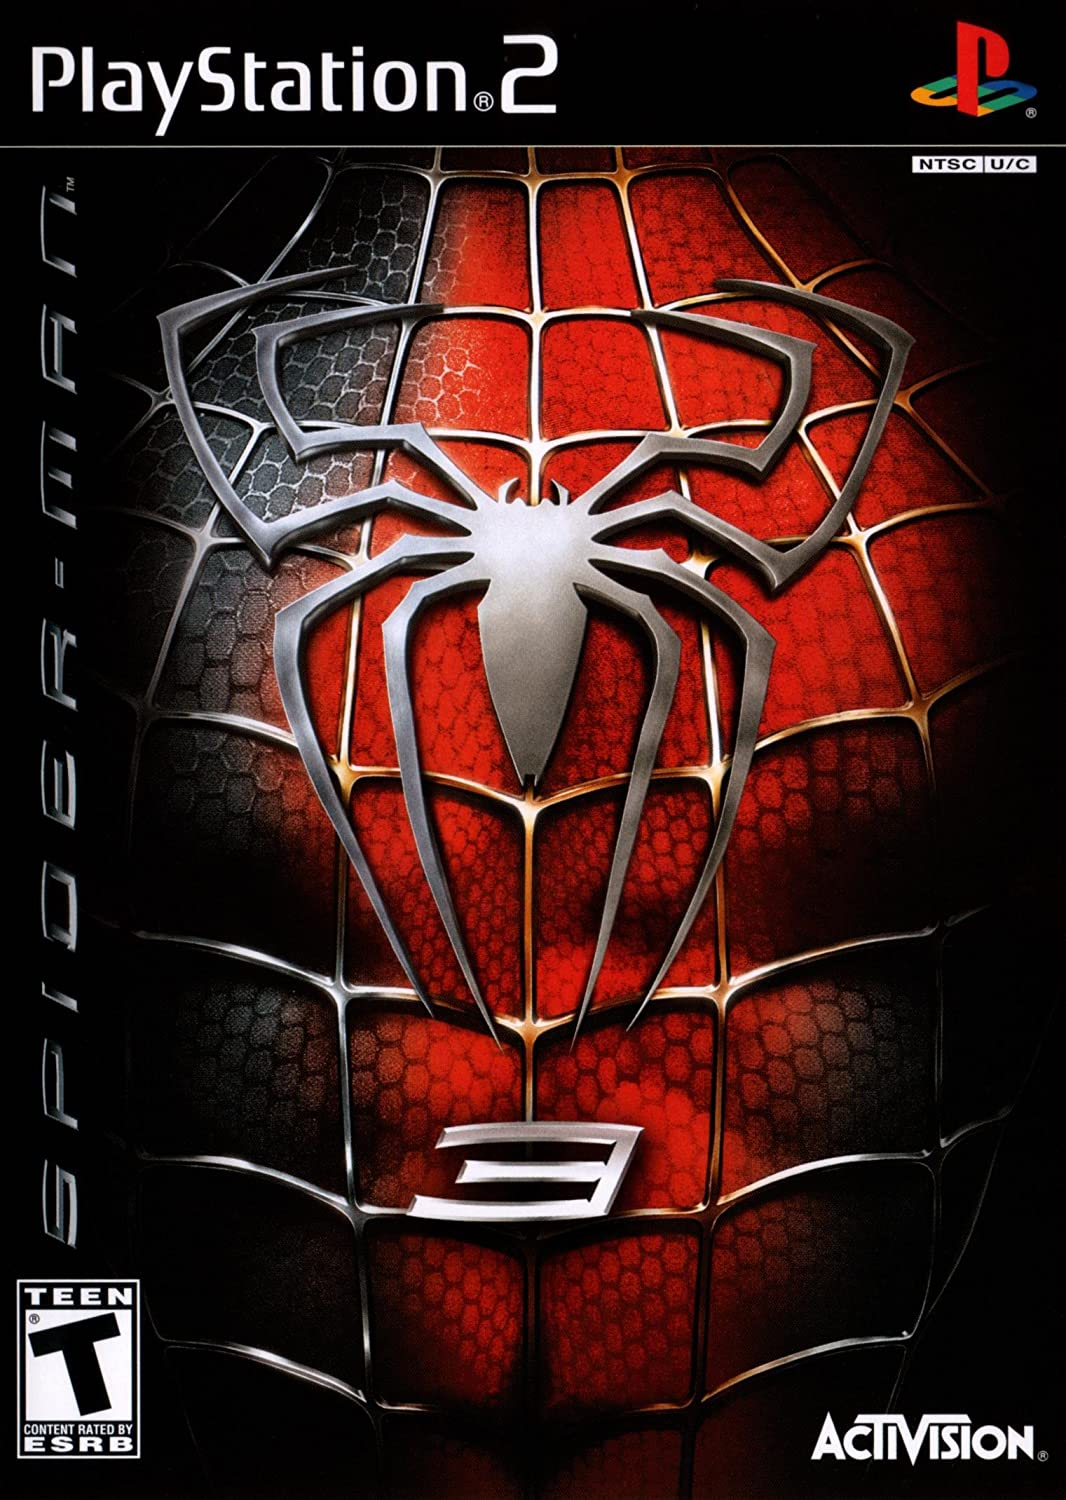 Spiderman 3 game for playstation 2 gladiator free online slot machines